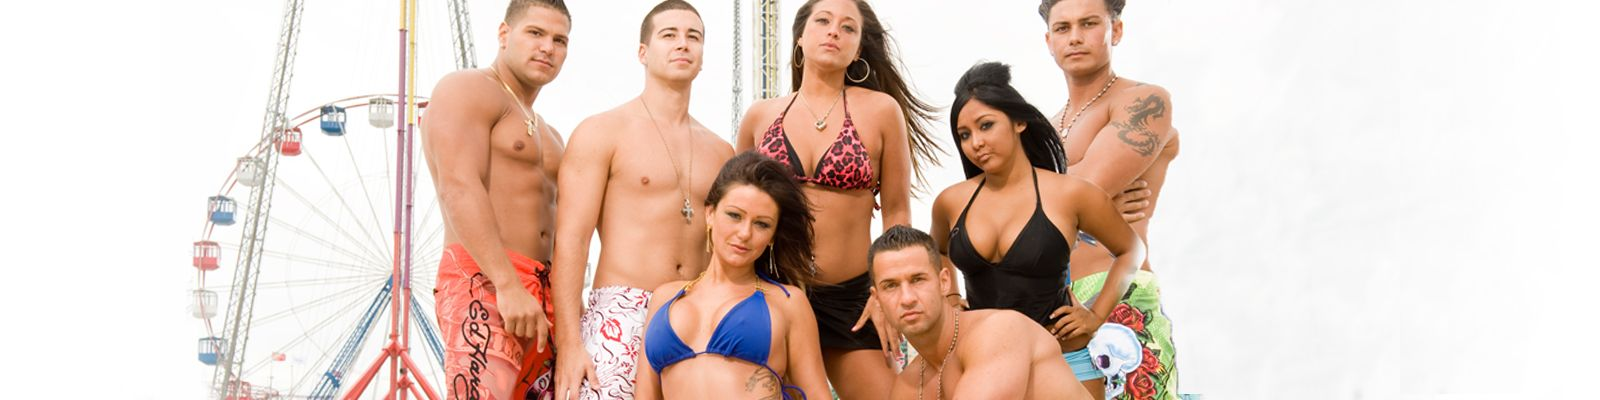 jersey shore senior personals Are you trying to find good looking women in jersey shore for dating and hookups whether you want black, white, older, younger, big, or hot women dating ads online, we have it all bom is unlike any other date personals site in that it's fast to browse and provides a much more quality environment.